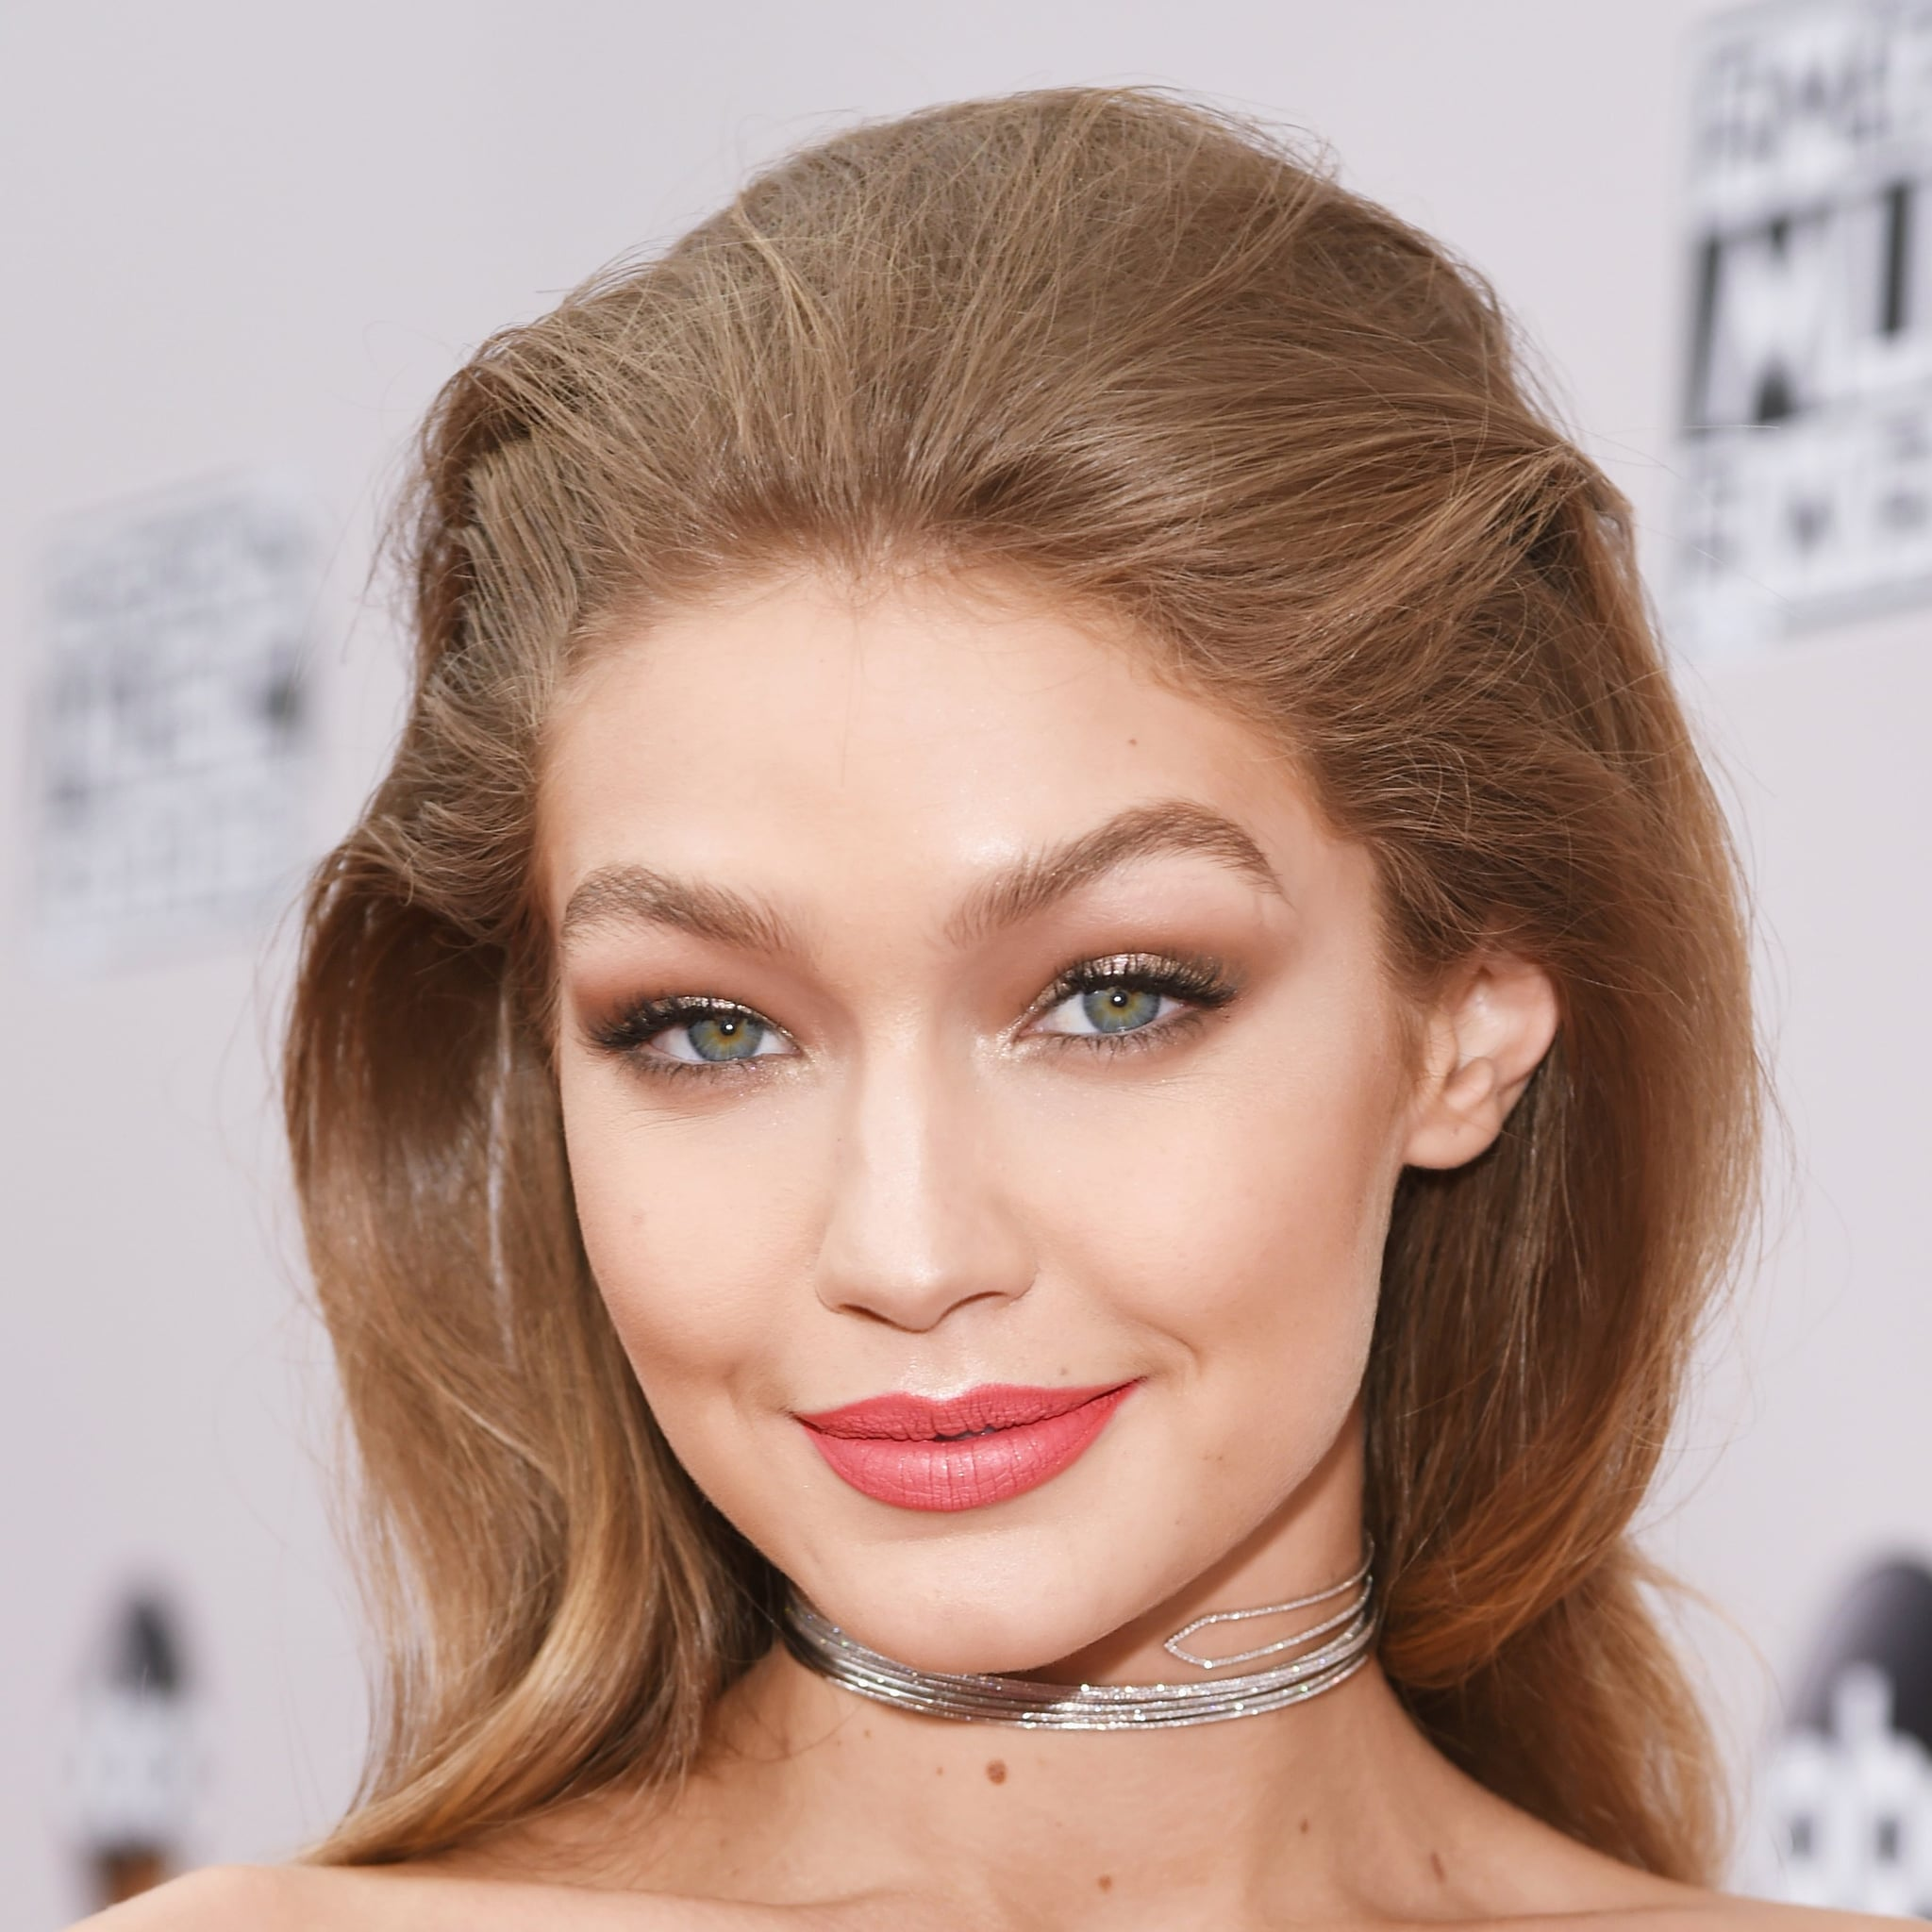 Stunning Beauty Looks From The AMAs You'll Want To Steal Stunning Beauty Looks From The AMAs You'll Want To Steal new pics